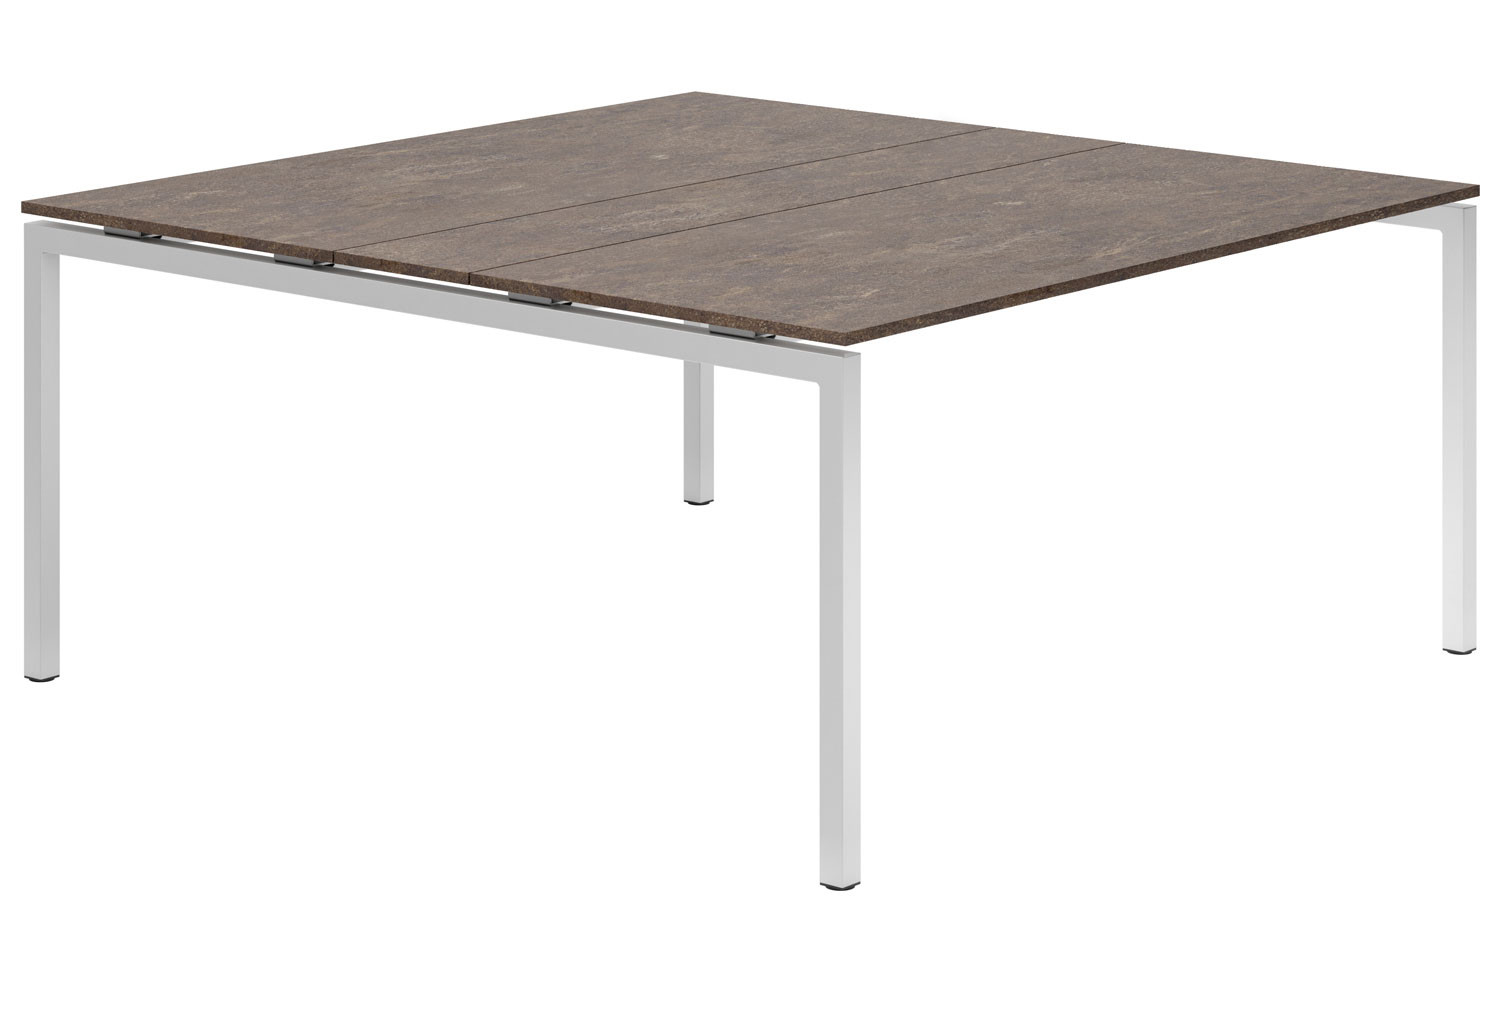 Lasso H-Leg 6-8 Person Meeting Table (Pitted Steel)